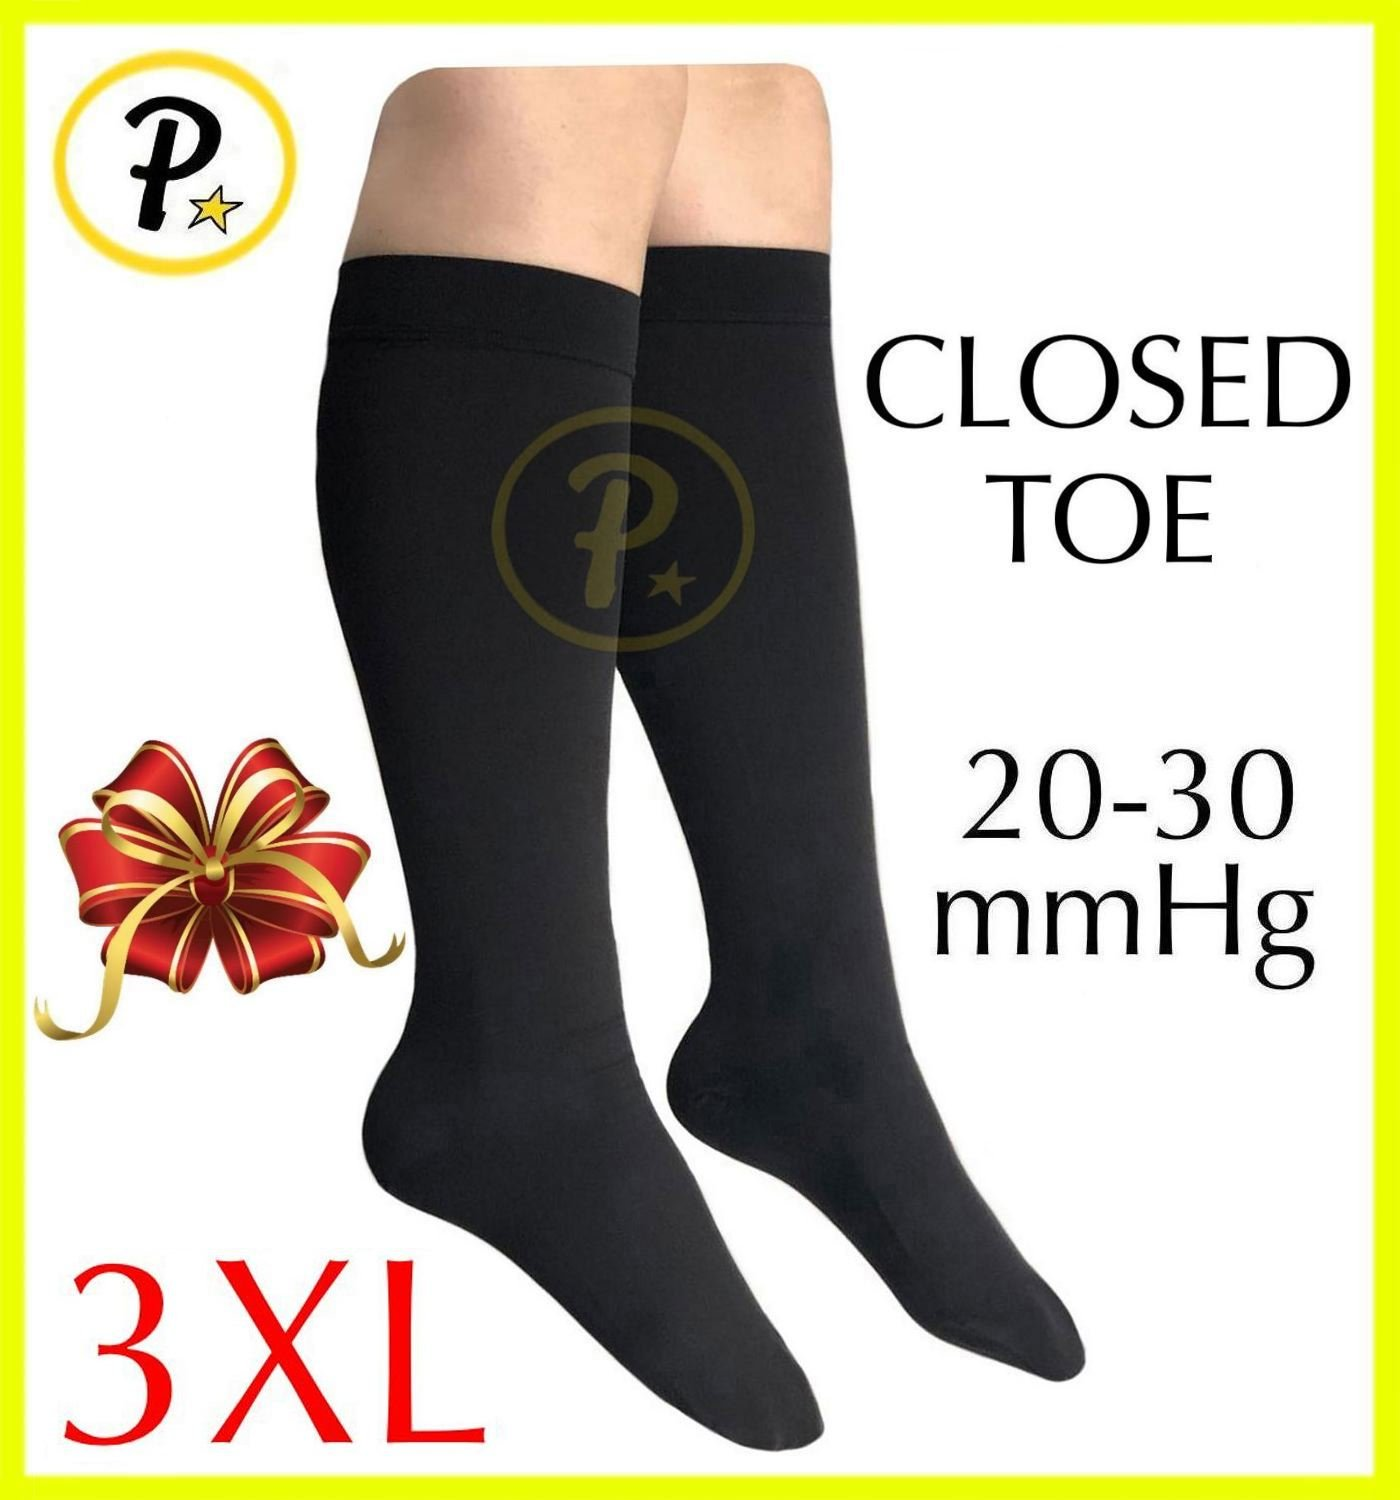 Presadee Closed Toe (BIG & TALL SUPER SIZE) Traditional 20-30 mmHg Compression Grade Swelling Veins Ankle Calf Leg Sock Support (3XL, Black) by Presadee